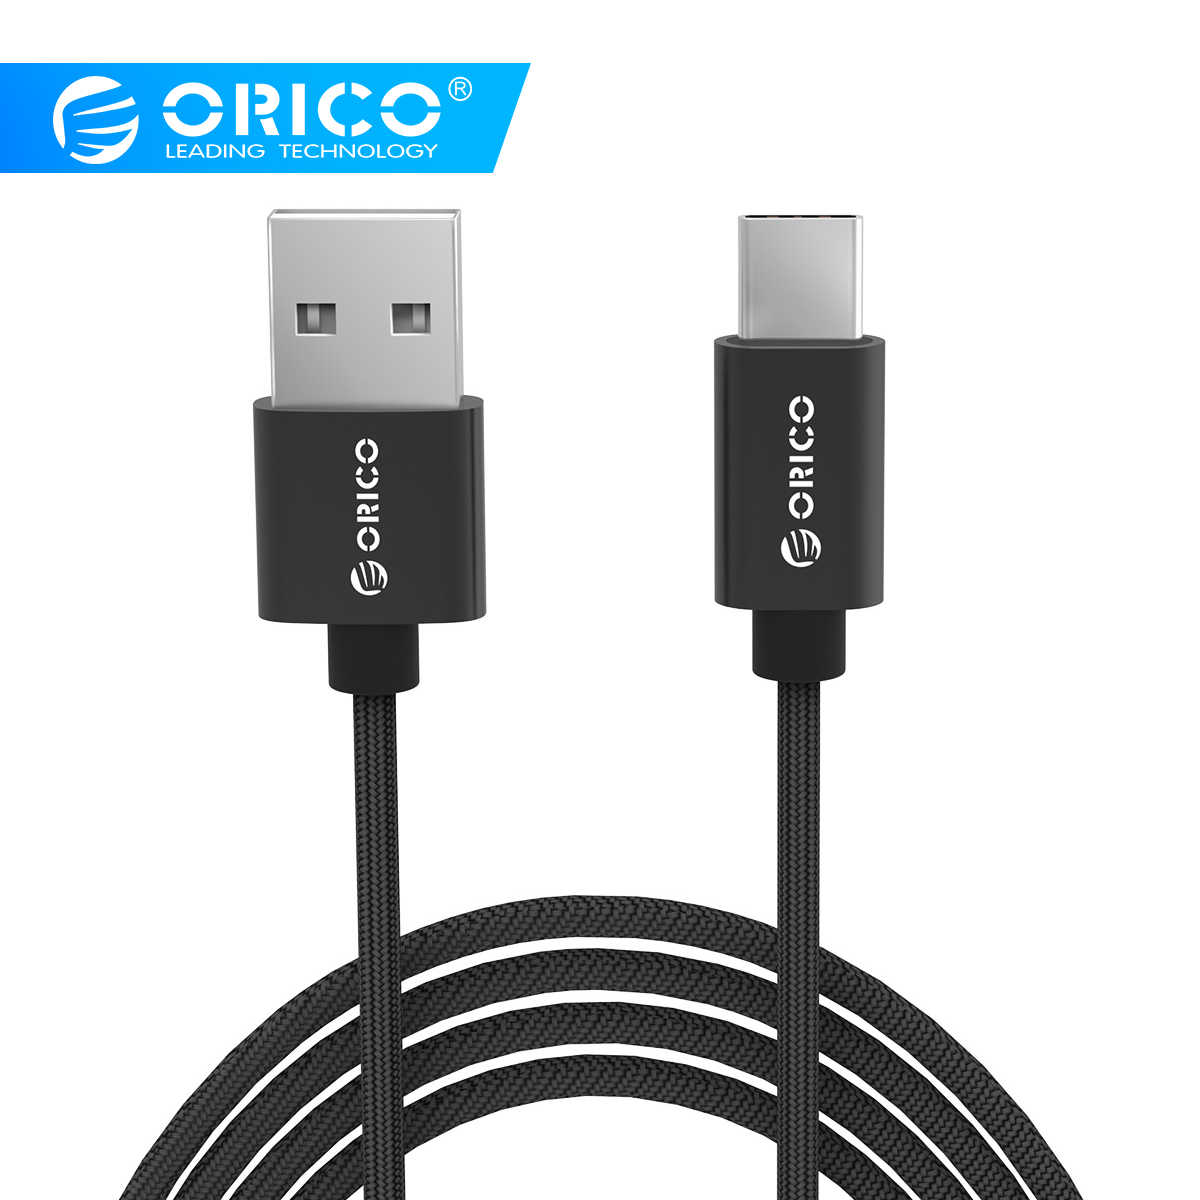 ORICO USB Cable For Samsung S8 USB Type C Charger Cable For Huawei Mate9 10 P9 10 Xiaomi Mobile Phone Cable 3A Type-C Cable